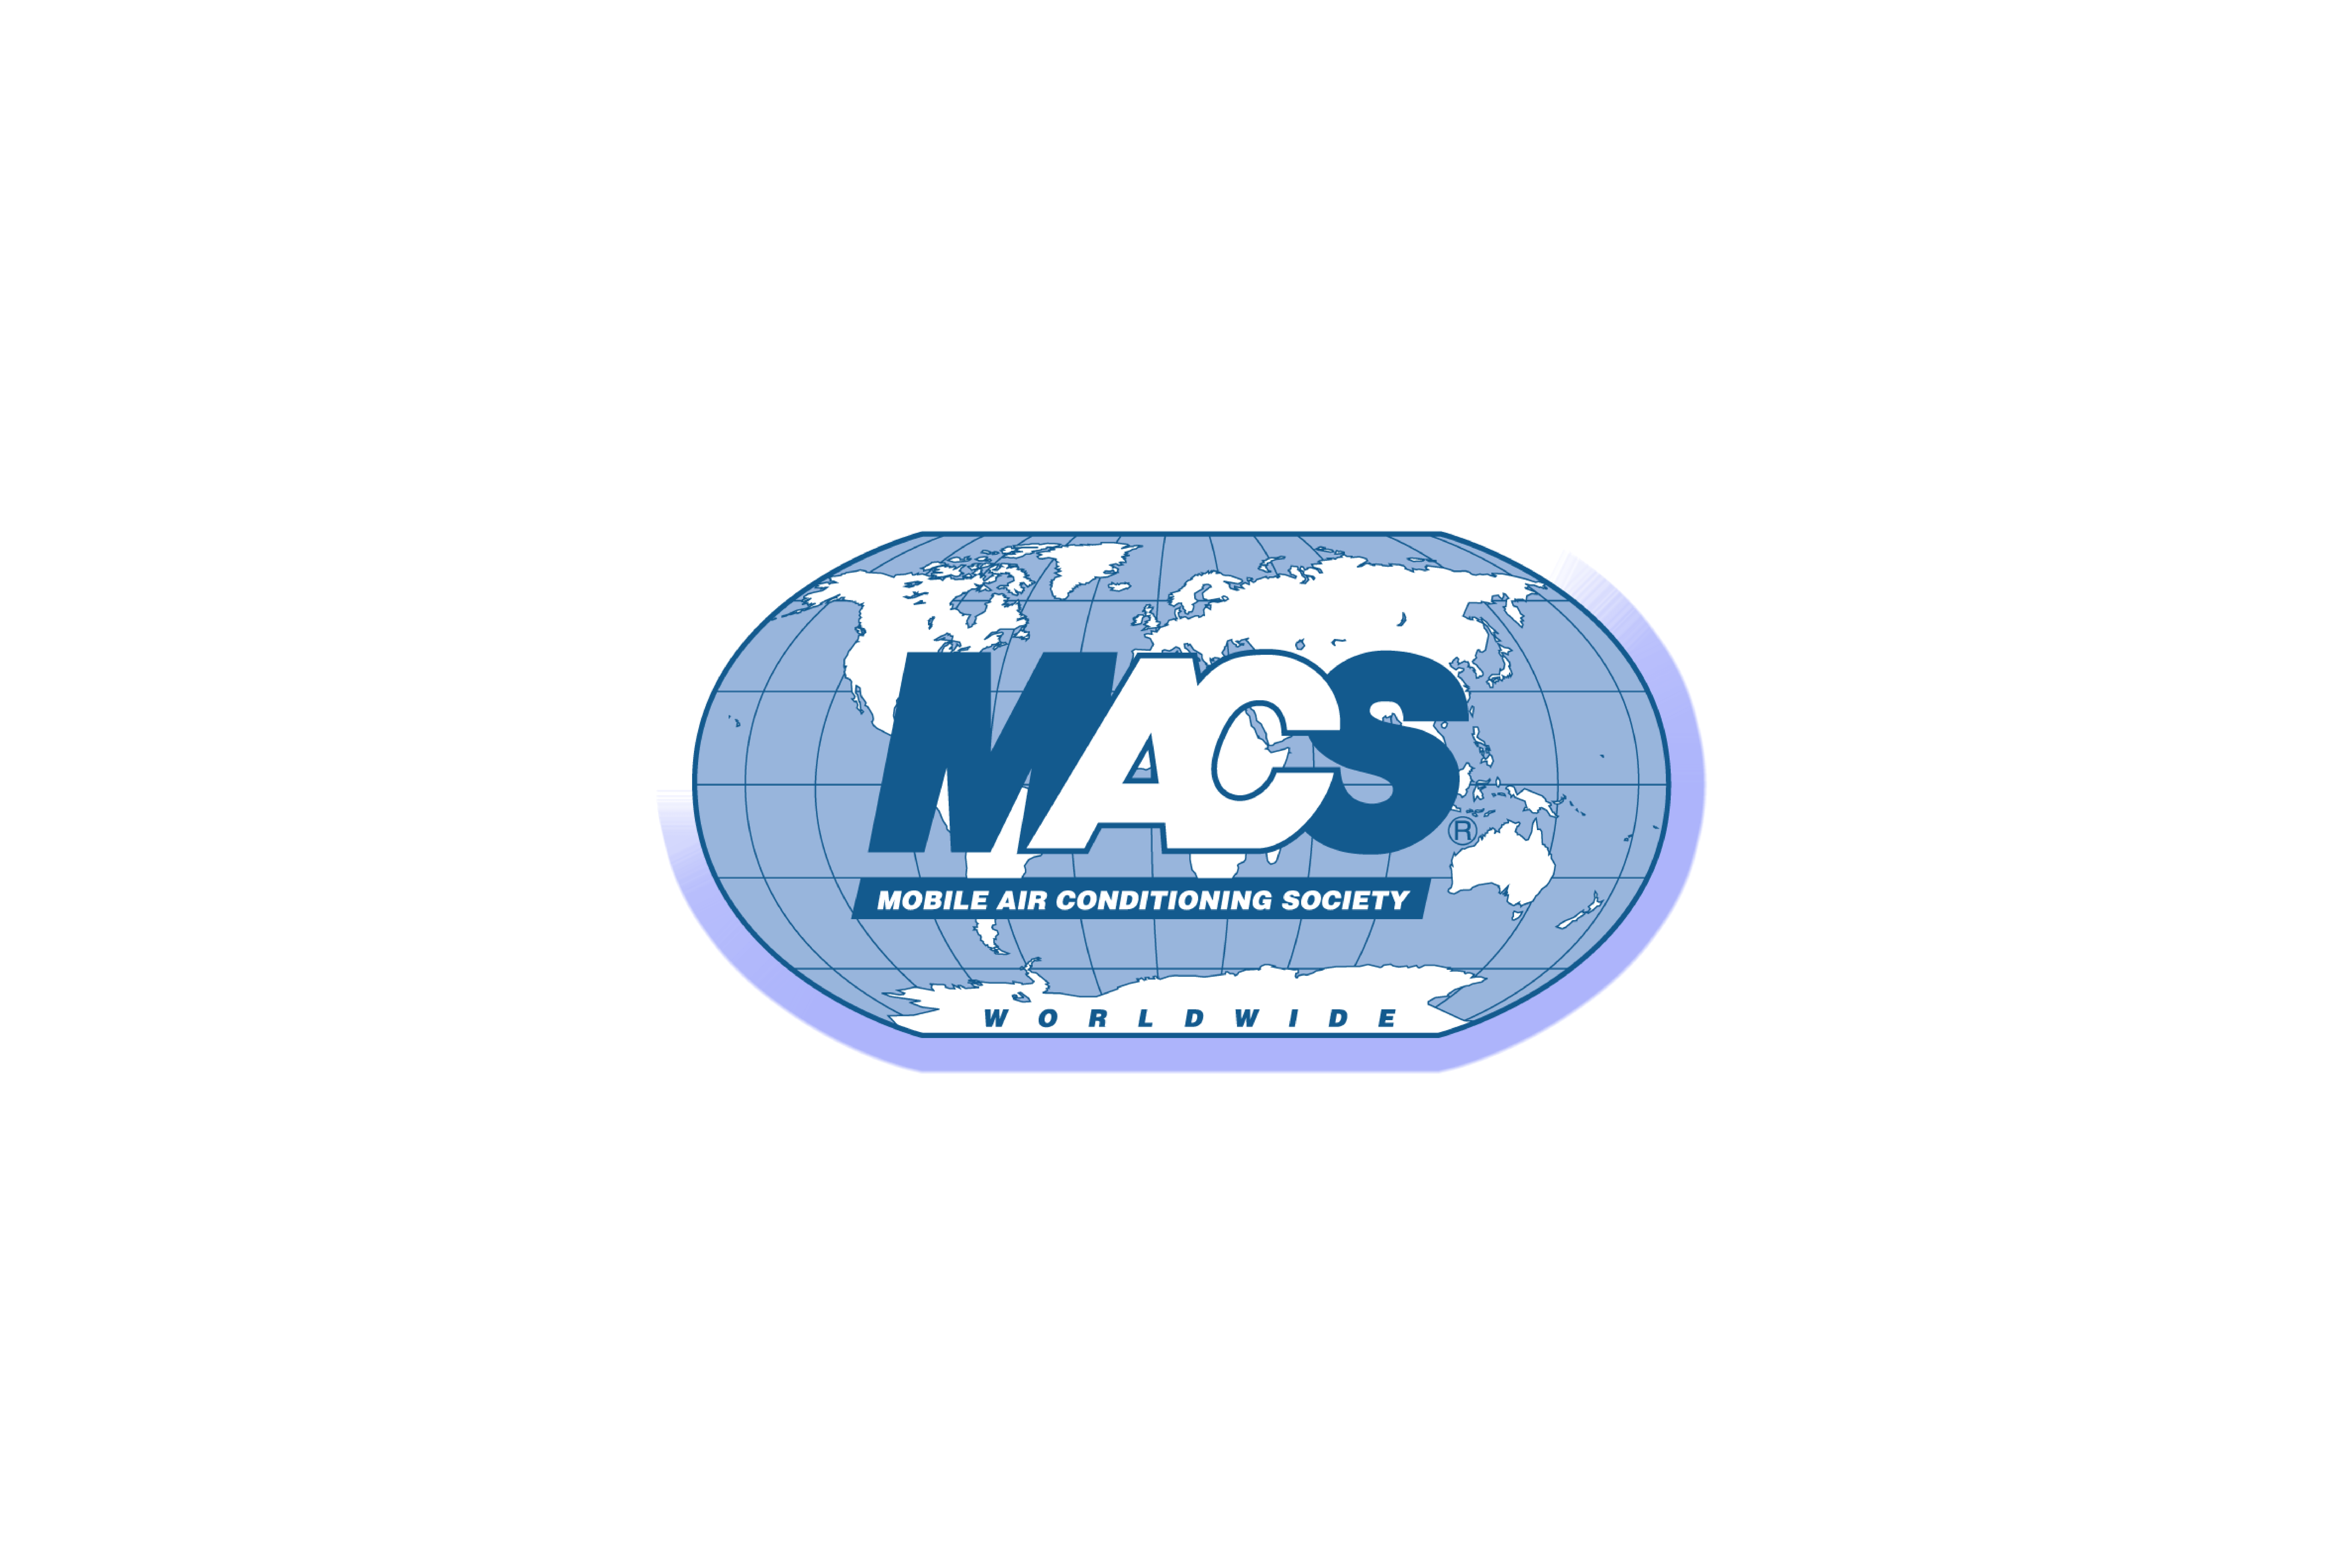 MACS Mobile Air Conditioning Society Worldwide Certification